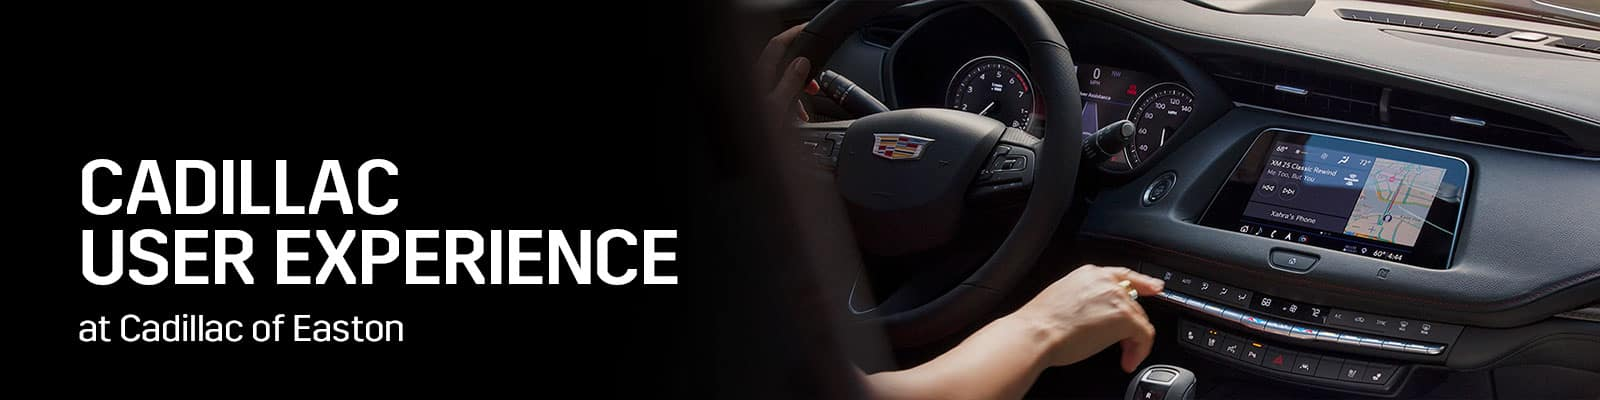 Cadillac User Experience Overview - Germain Cadillac of Easton